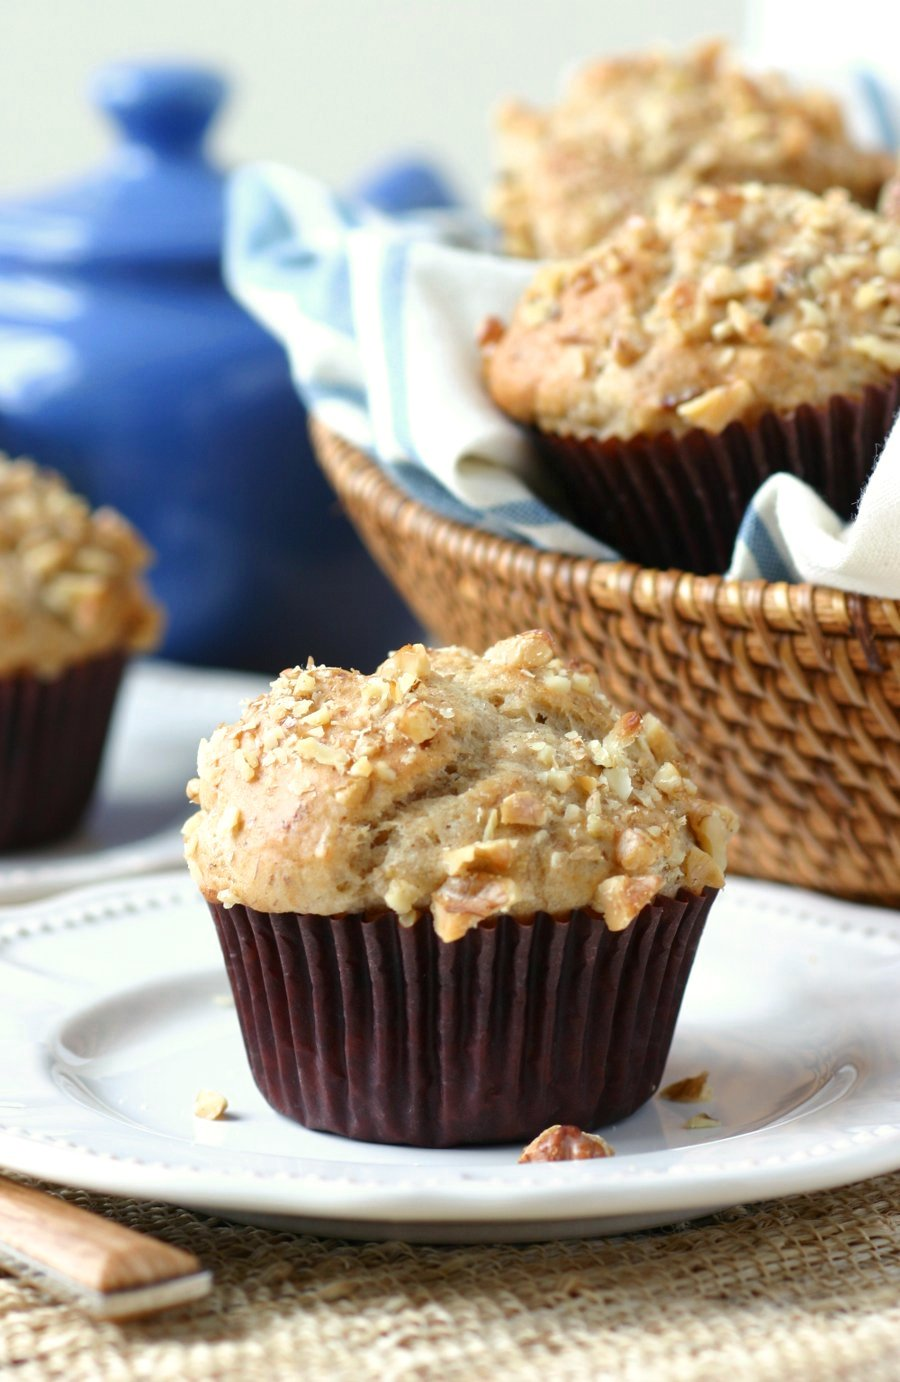 These Banana Muffins with Walnut and Anise Seed are lightly sweetened and make a perfect breakfast treat at home or on-the-go.